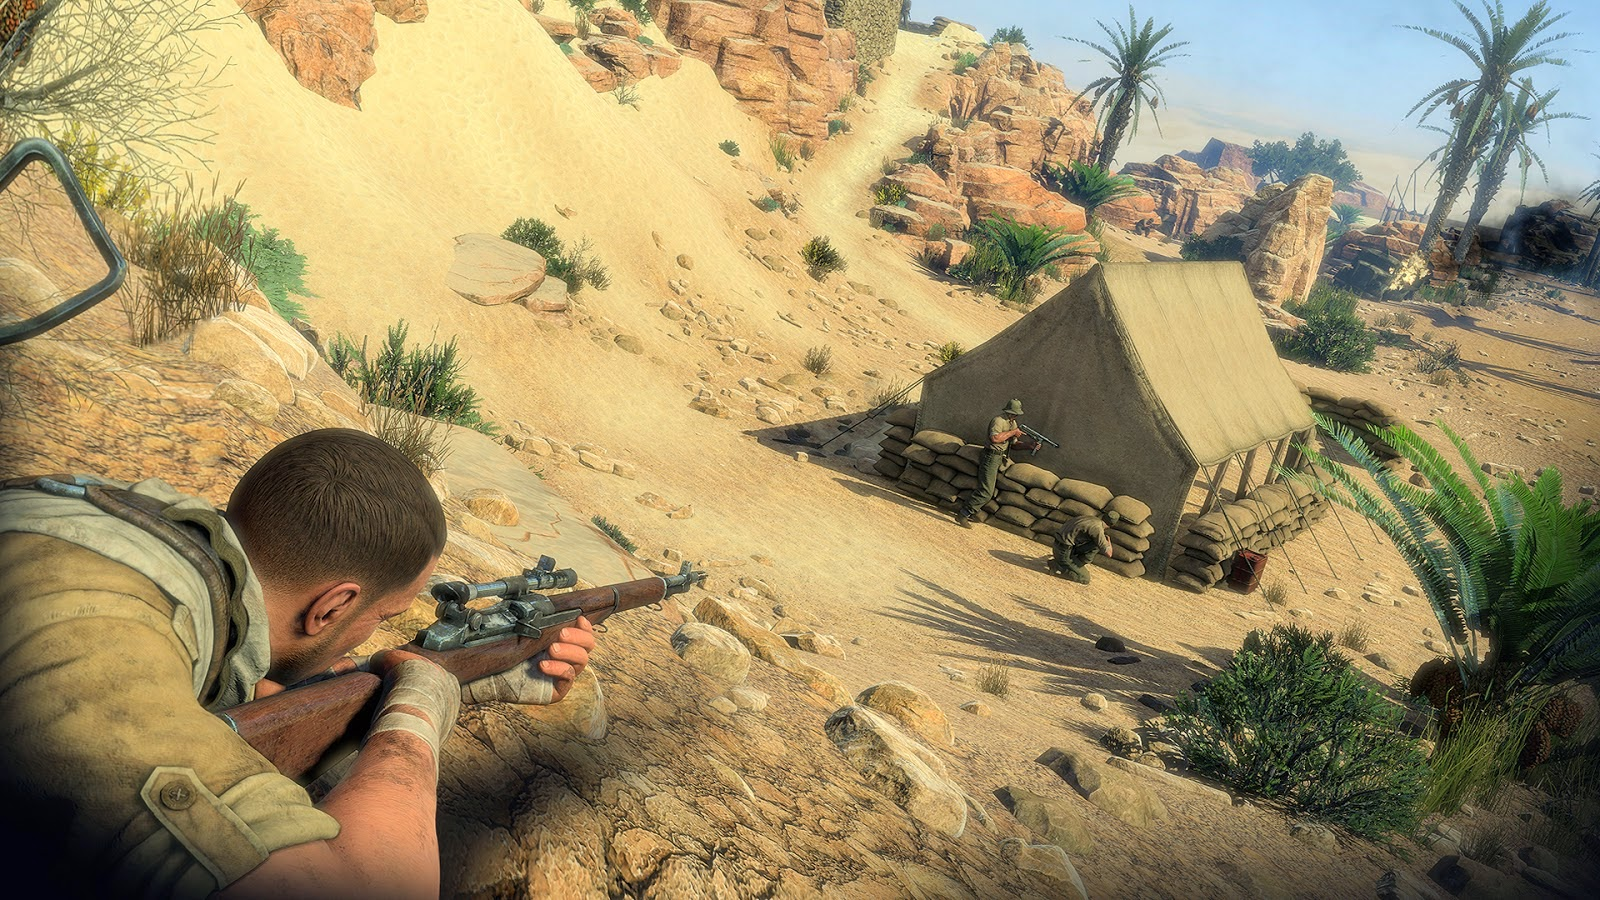 Free Download Sniper Elite 3 Pc Game Full Version